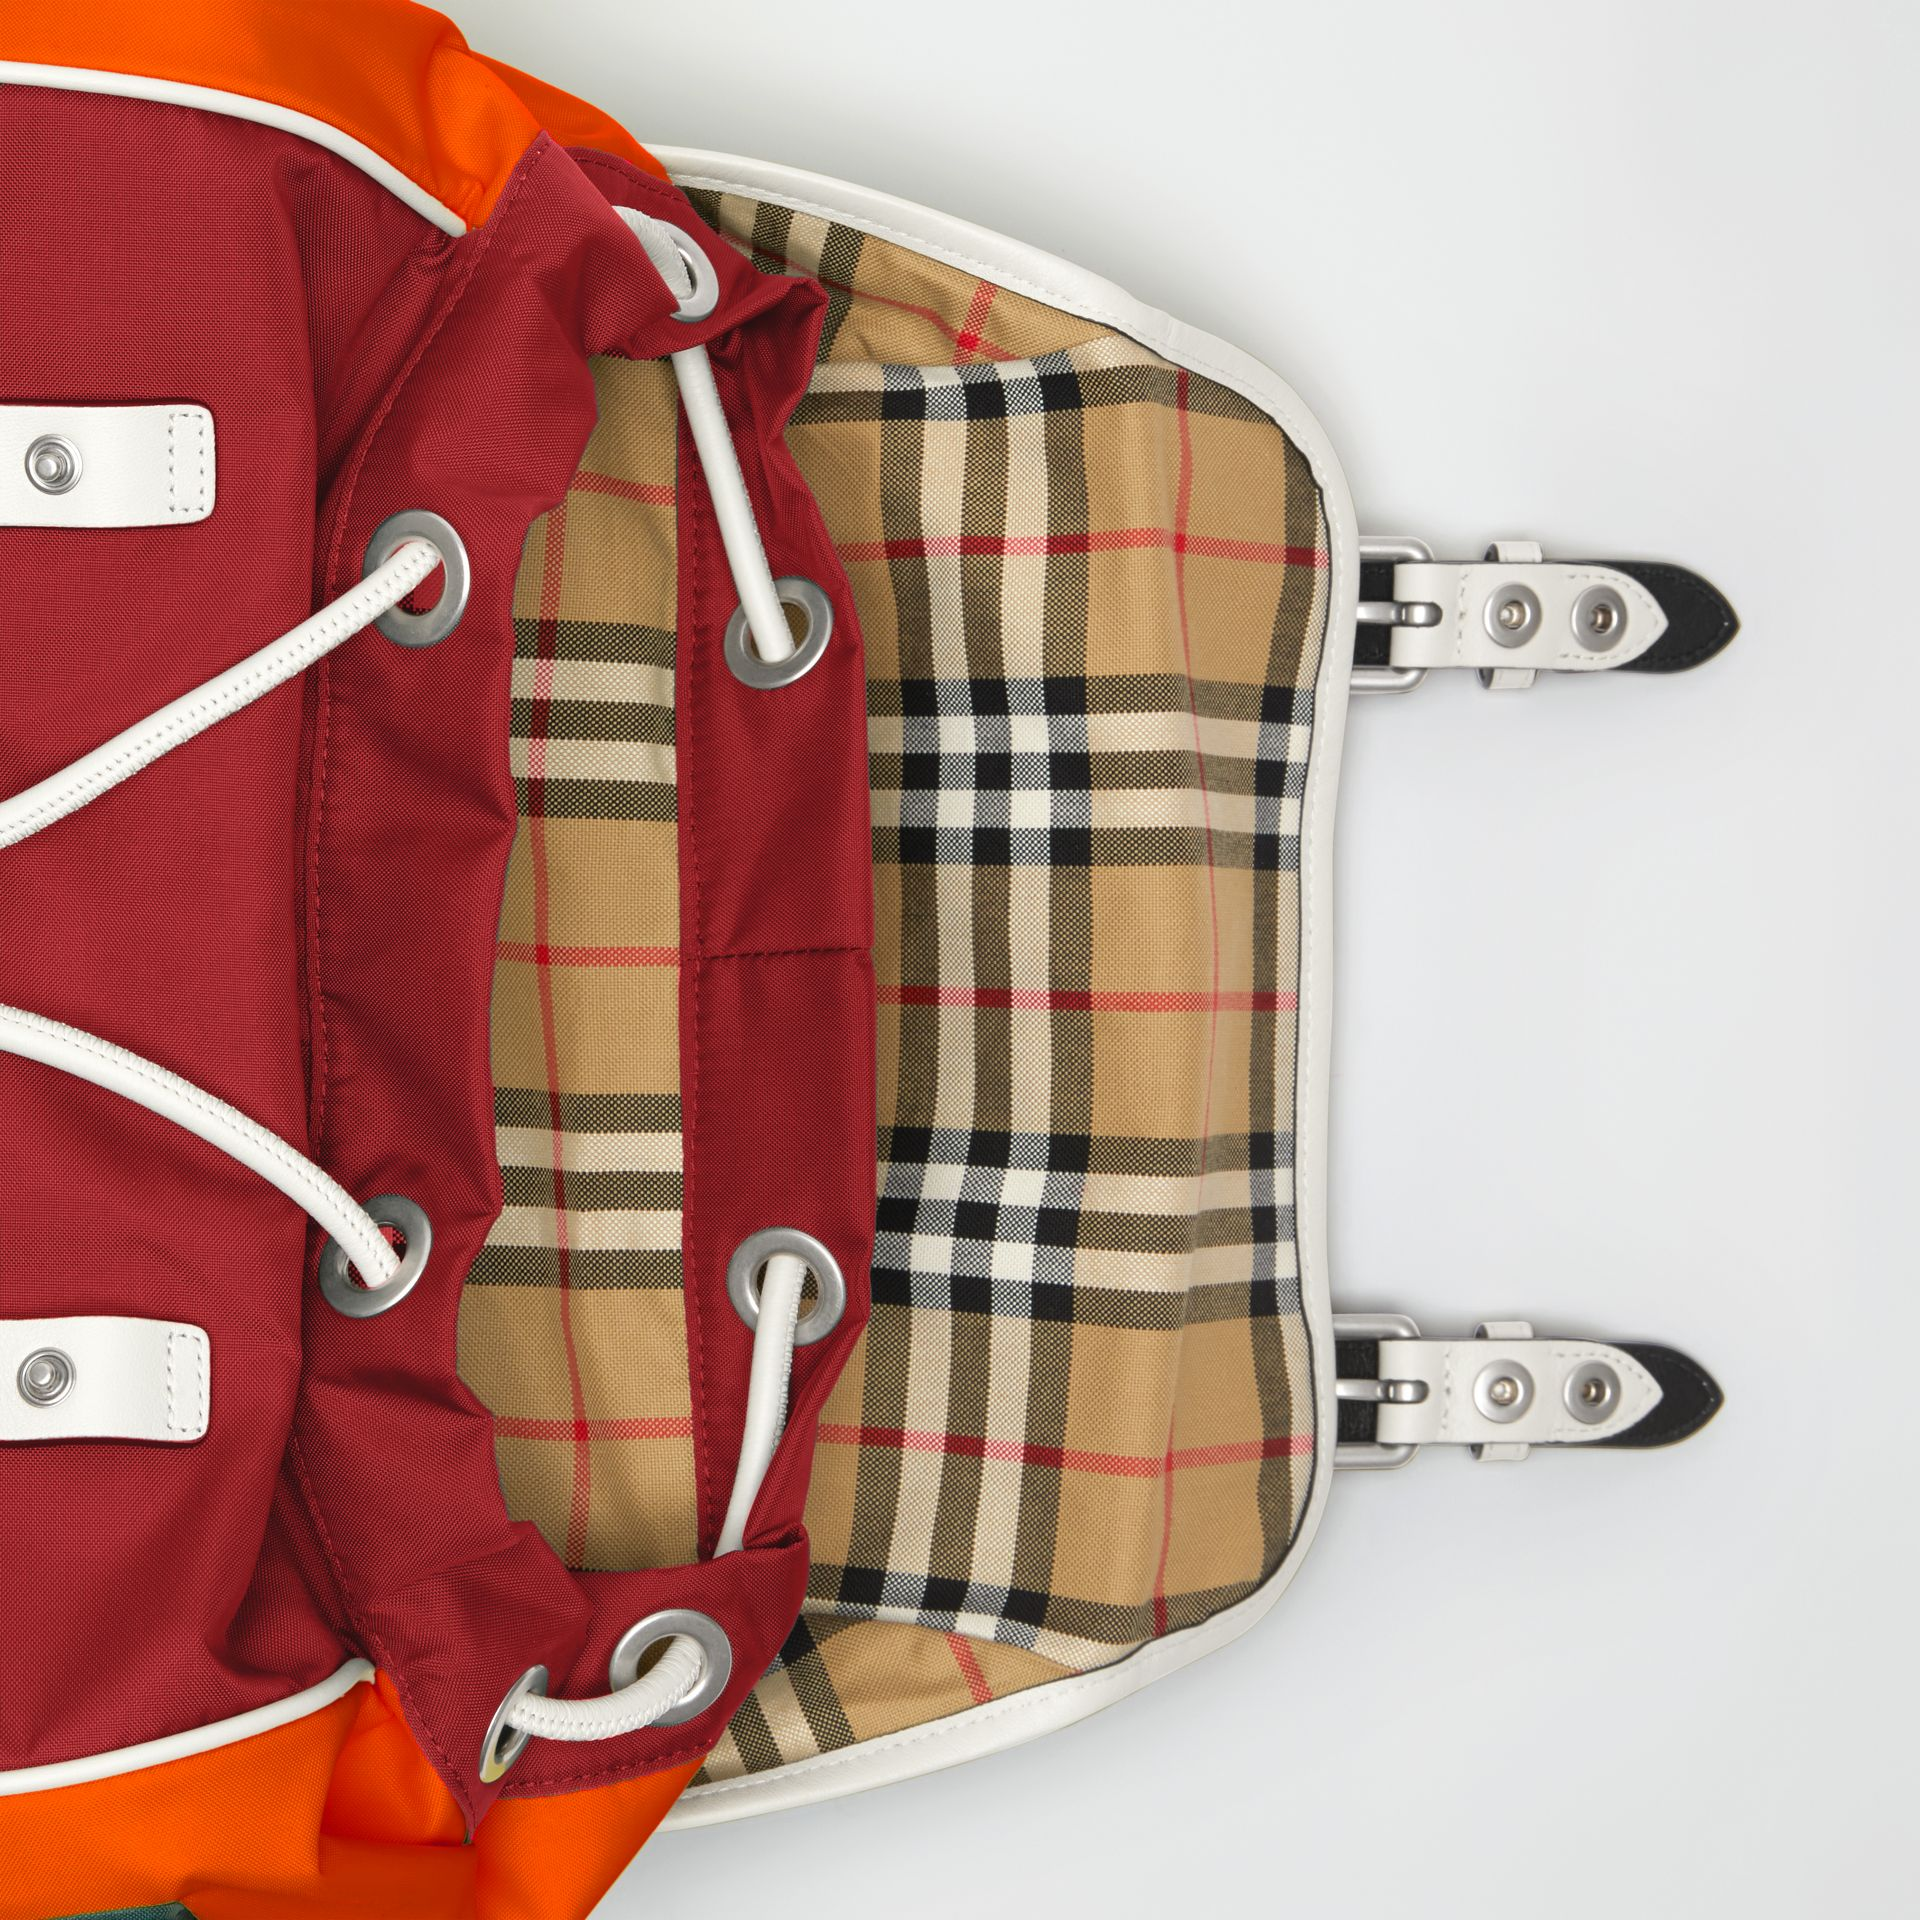 Tri-tone Nylon and Leather Backpack in Parade Red - Men | Burberry - gallery image 3